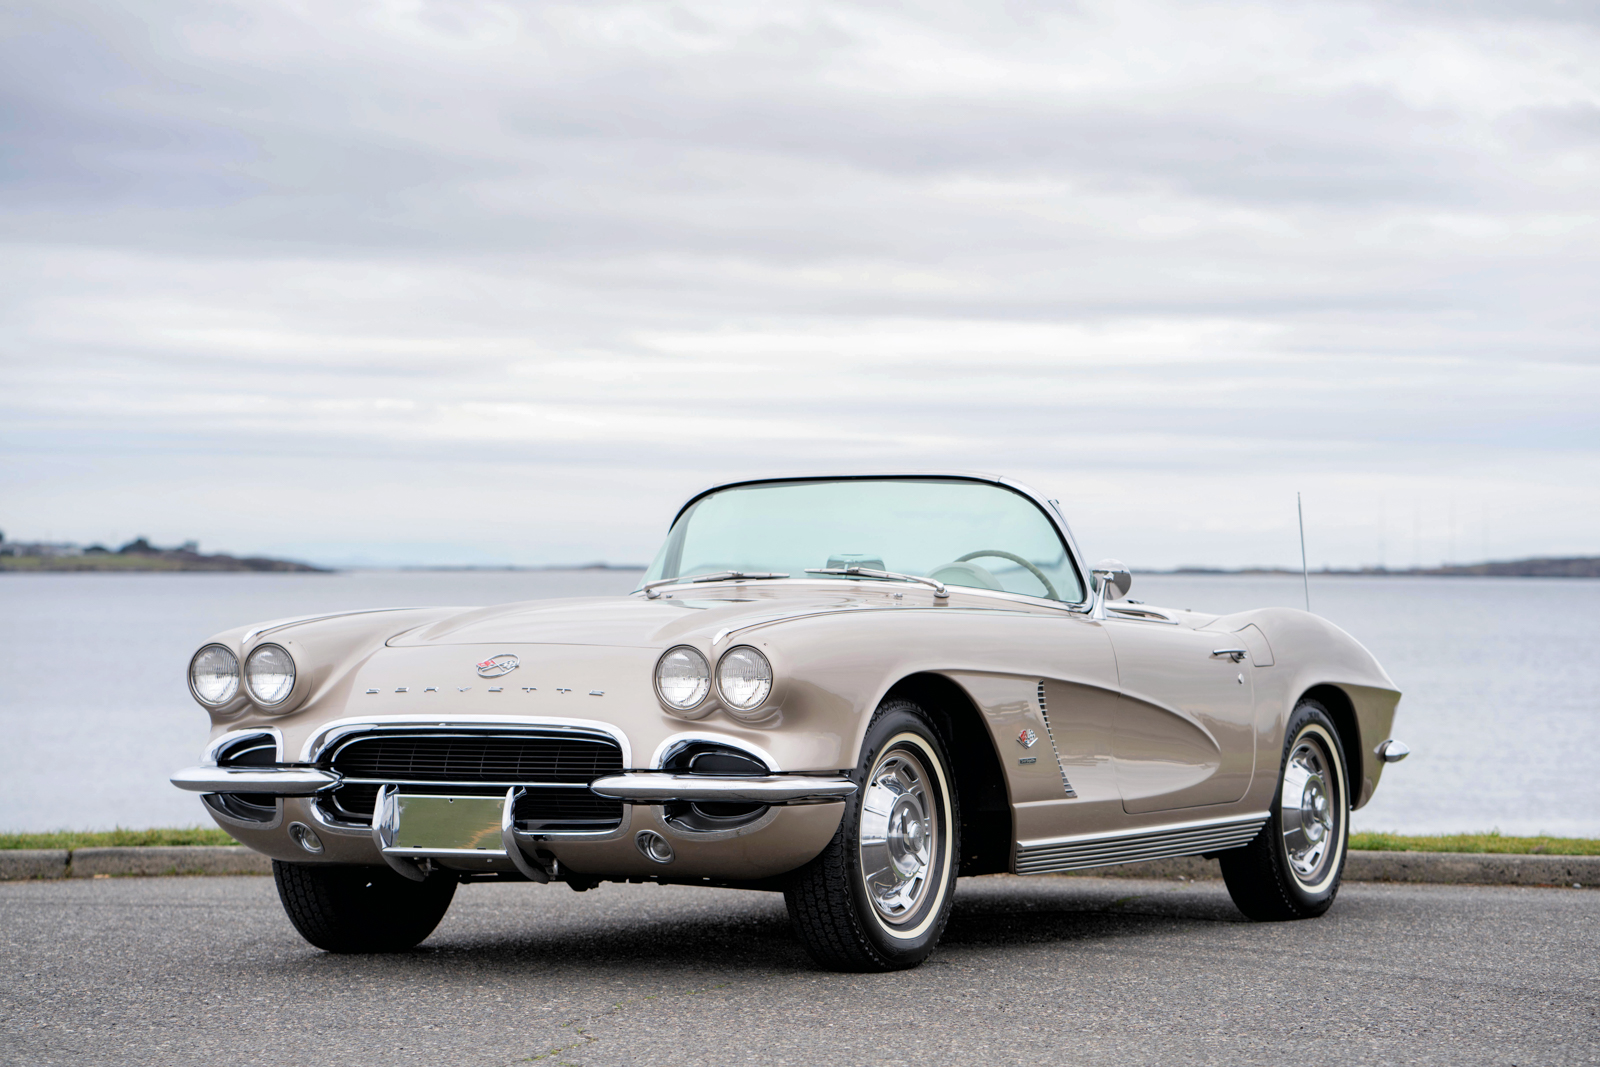 1962 Chevrolet Corvette Fuelie For Sale | Silver Arrow Cars Ltd ...